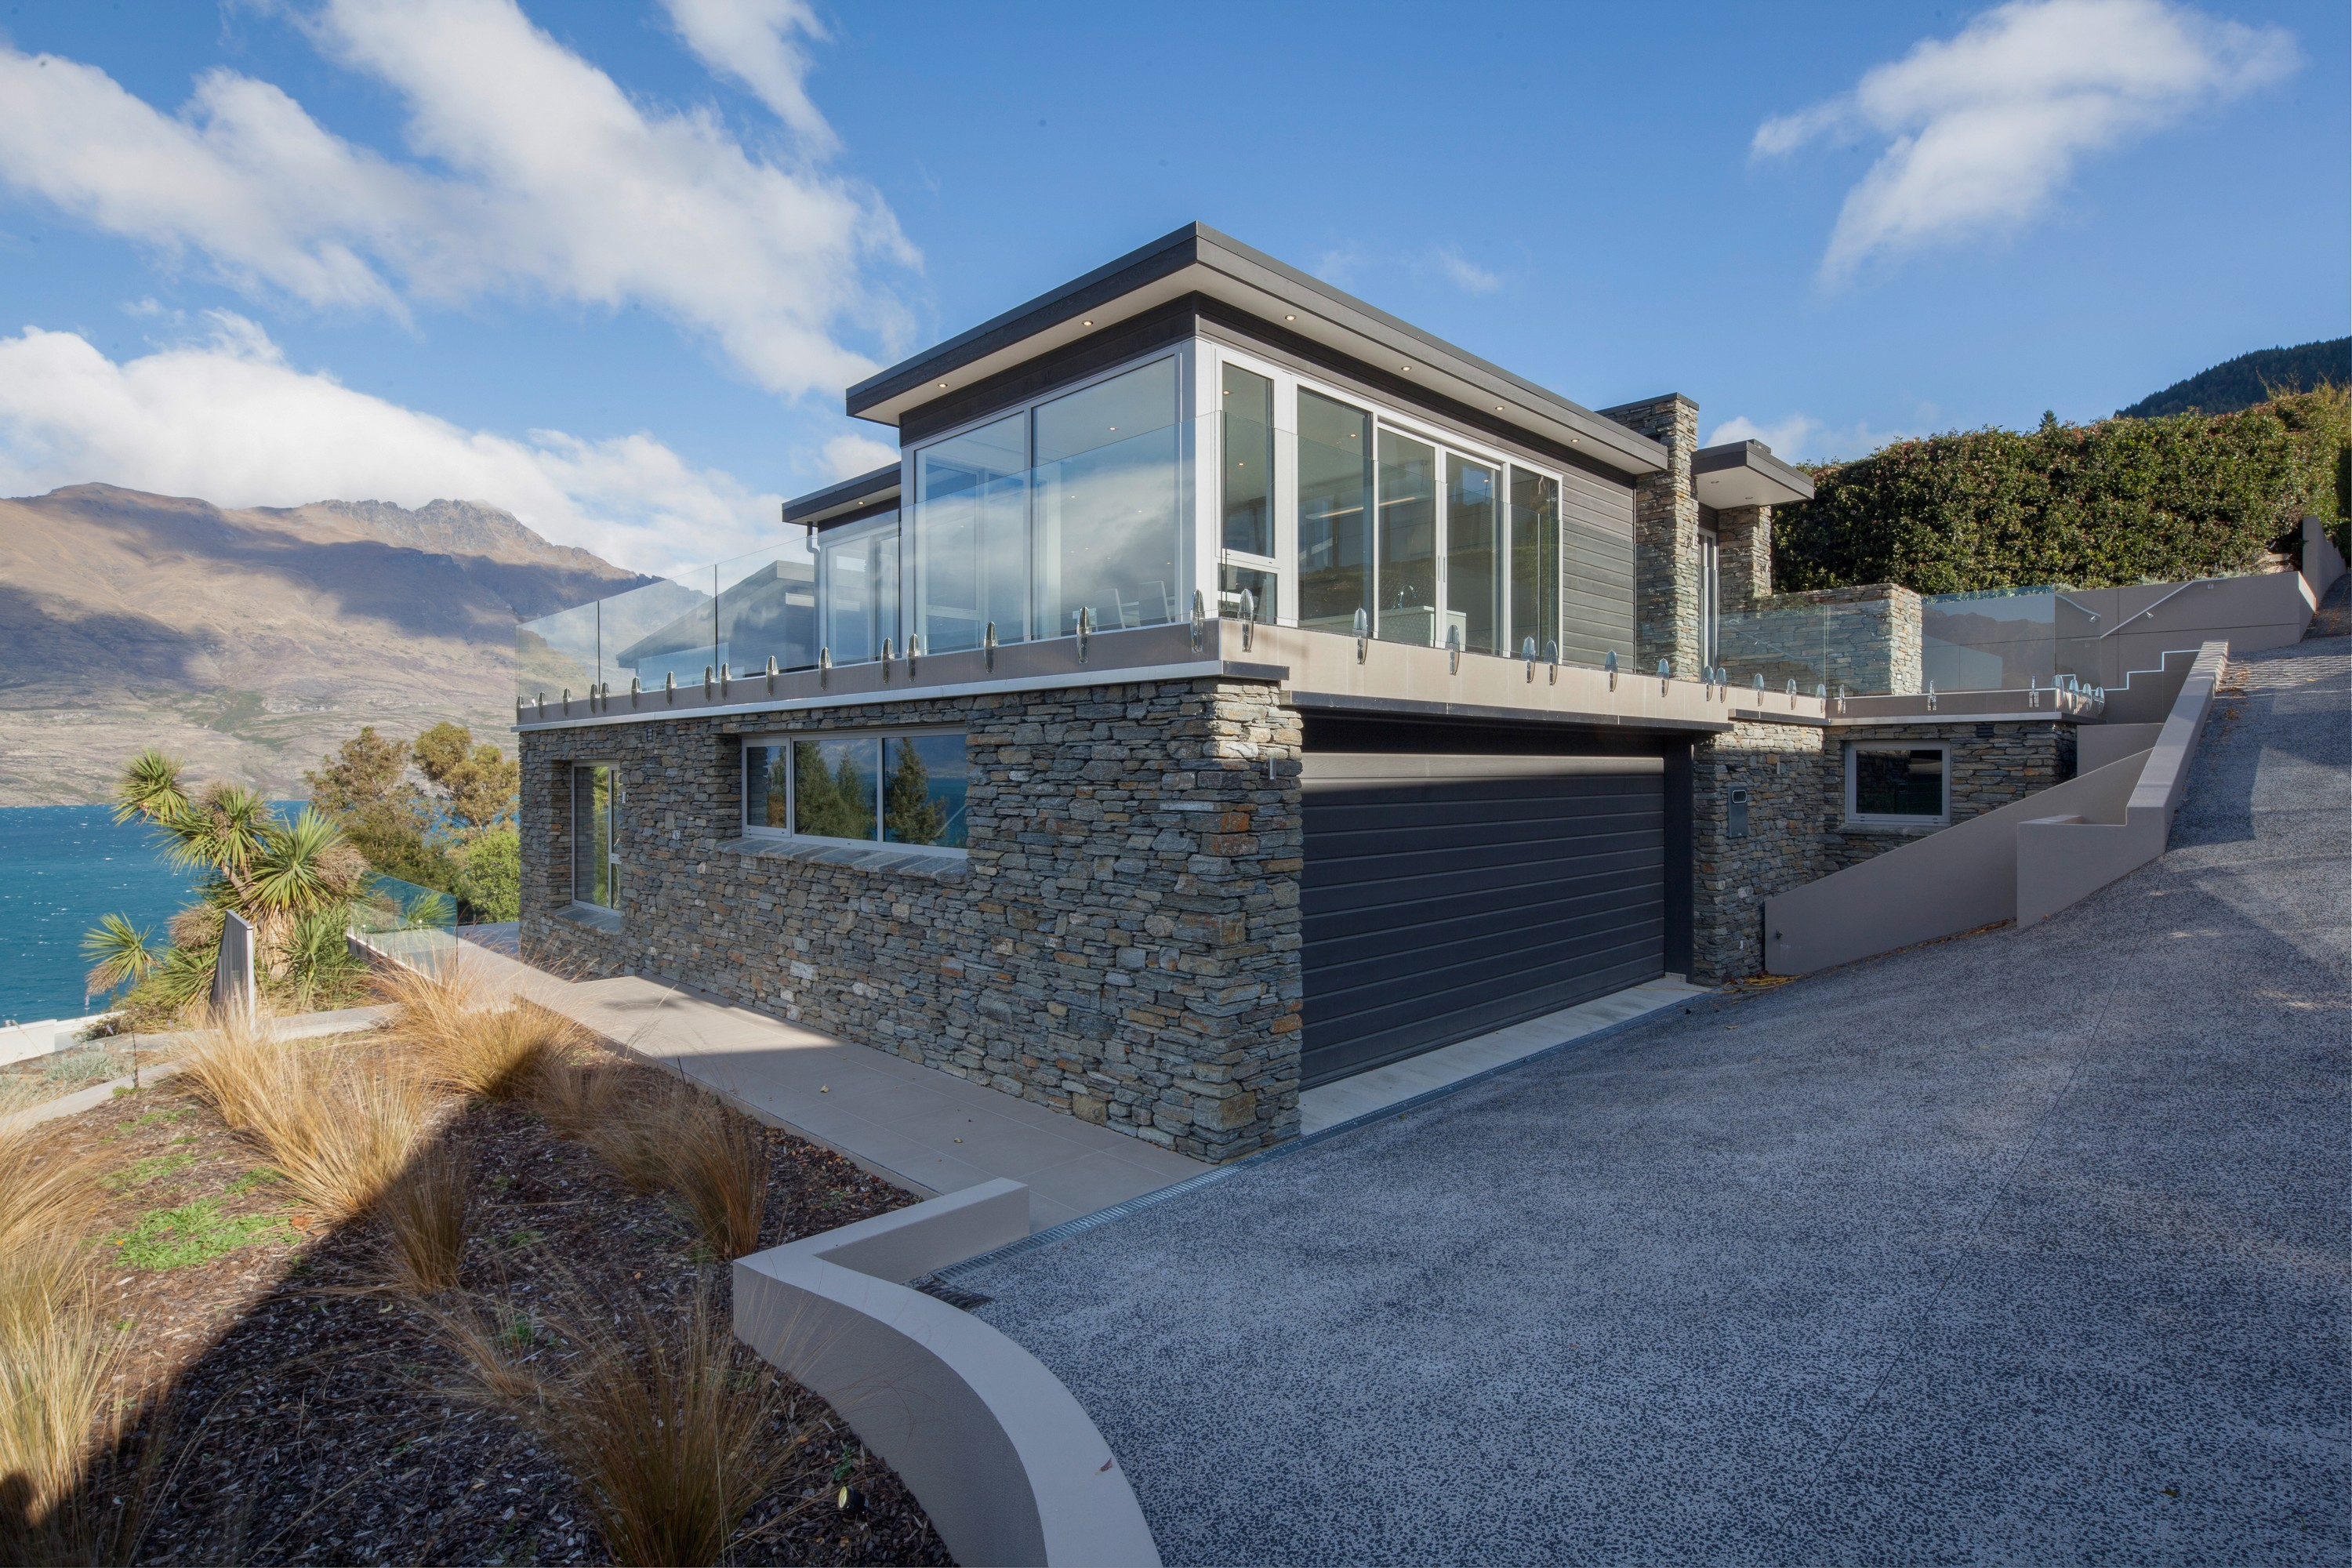 Single Family Home for Sale at 3 Whitbourn Place 3 Whitbourn Place Aspen Grove Queenstown, Otago, 9300 New Zealand